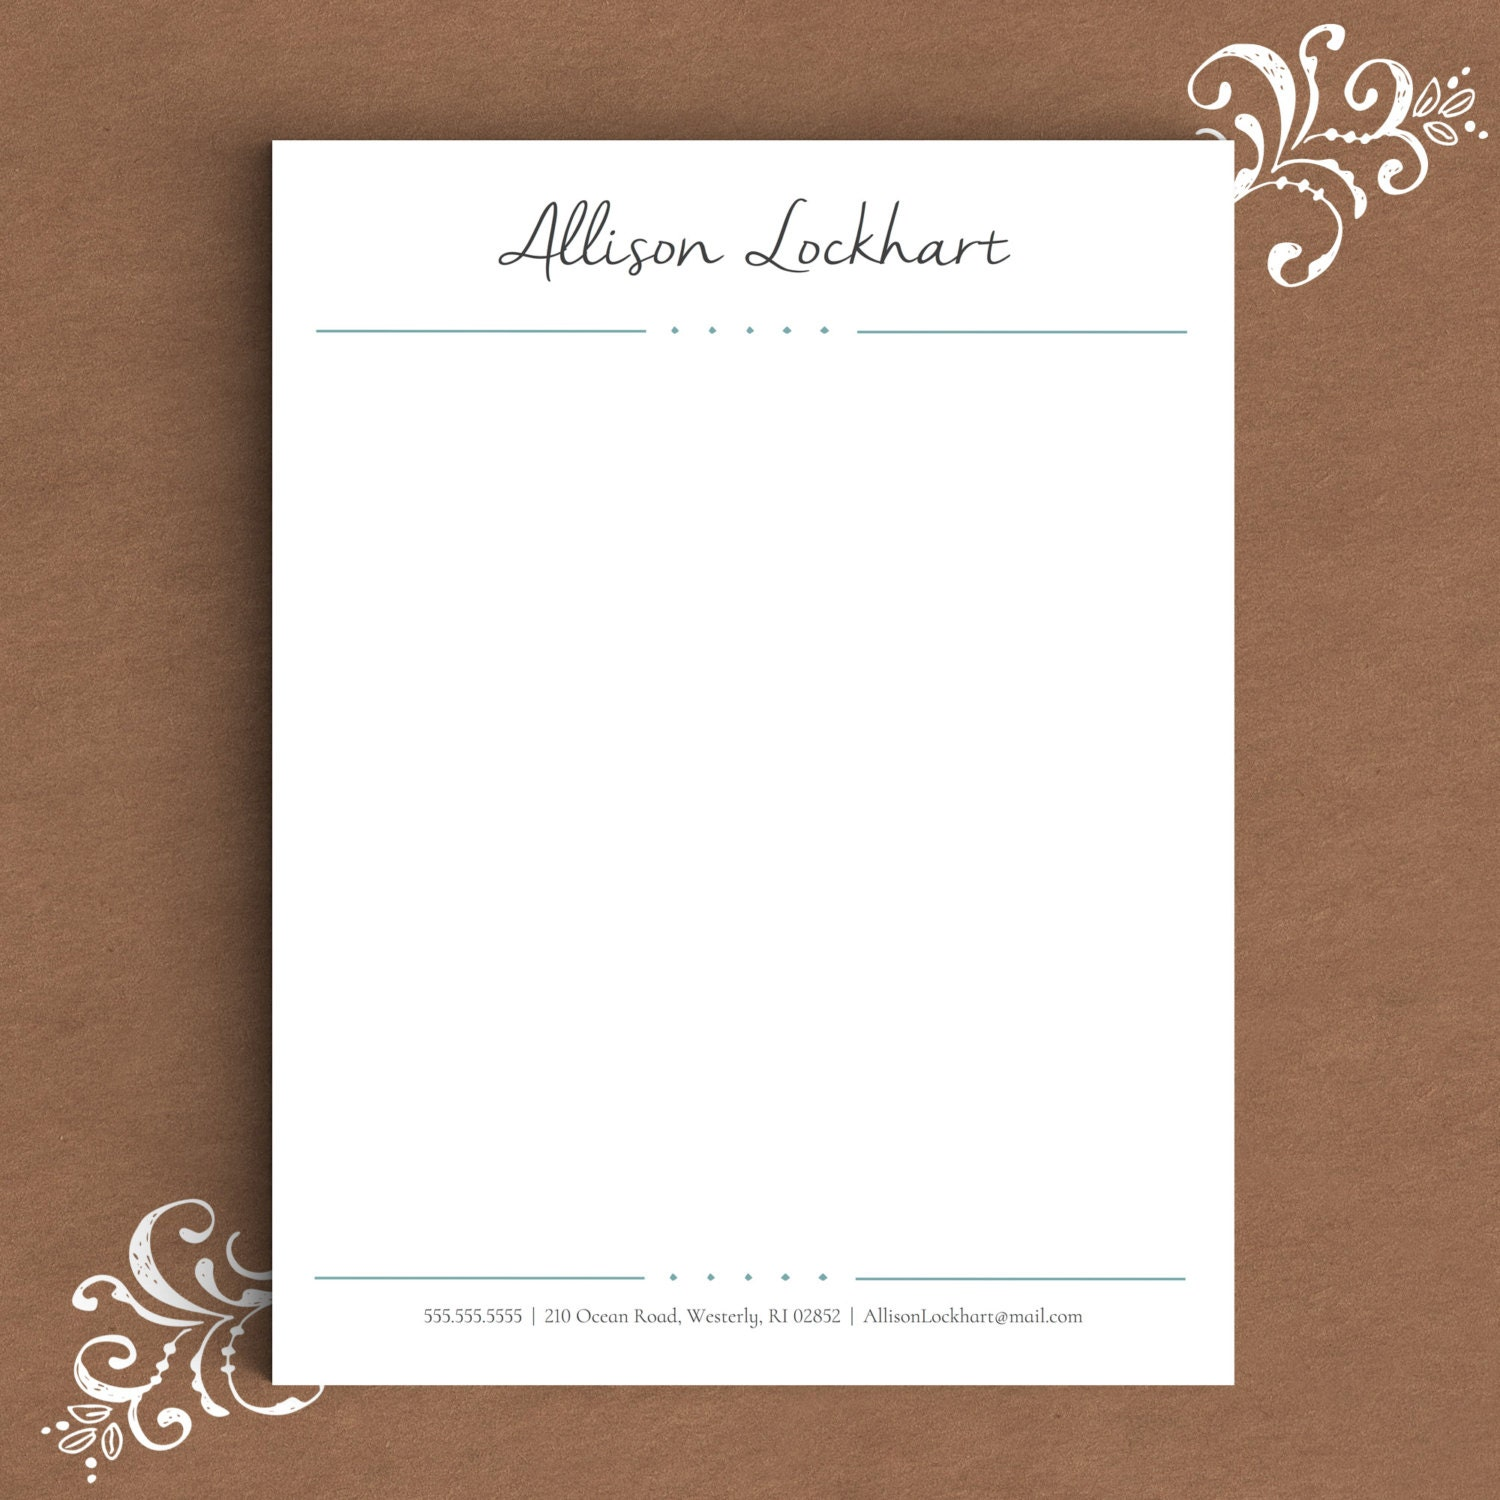 Letterhead template for word diy custom letterhead zoom spiritdancerdesigns